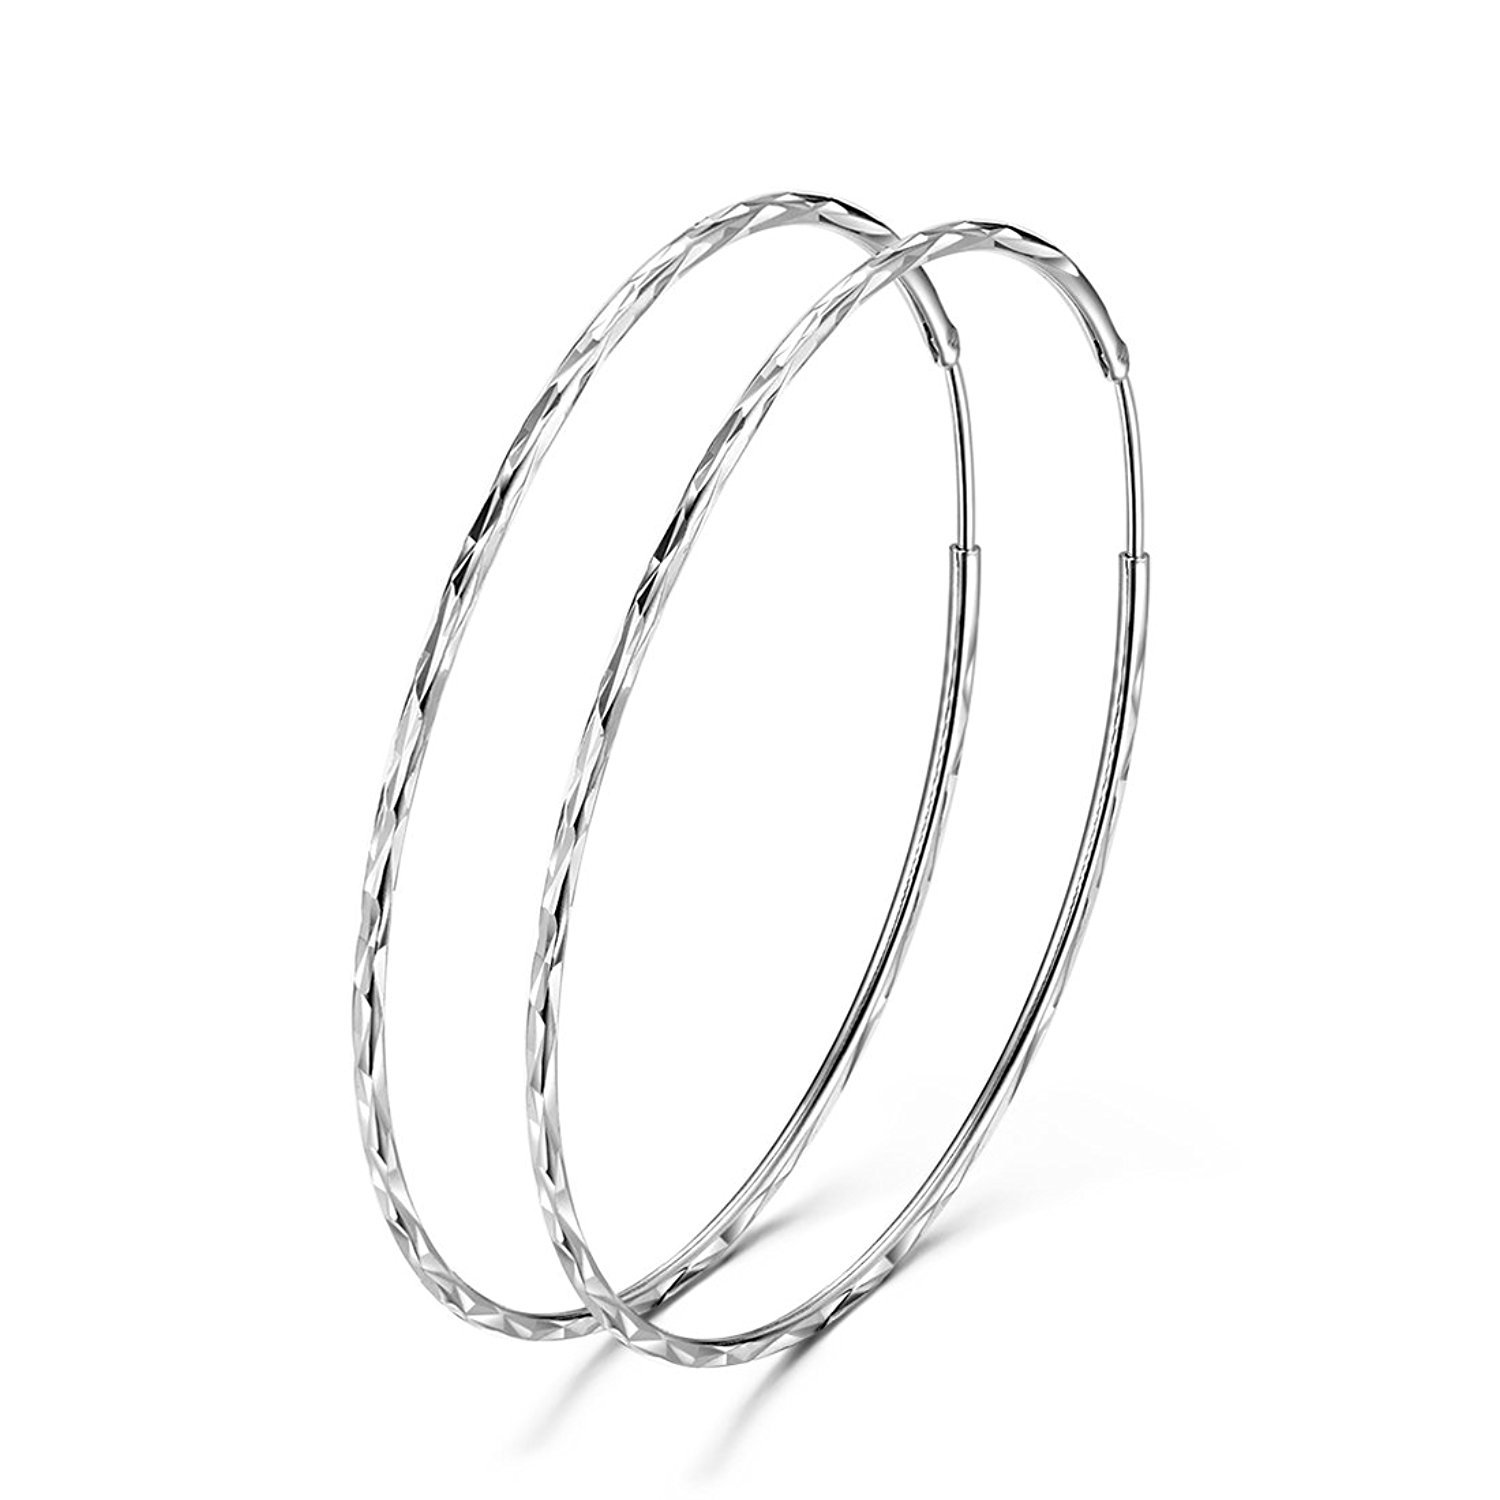 925 Sterling Silver Circle Endless Large Hoop Earrings for Women Girls (60MM Hoop Earrings)